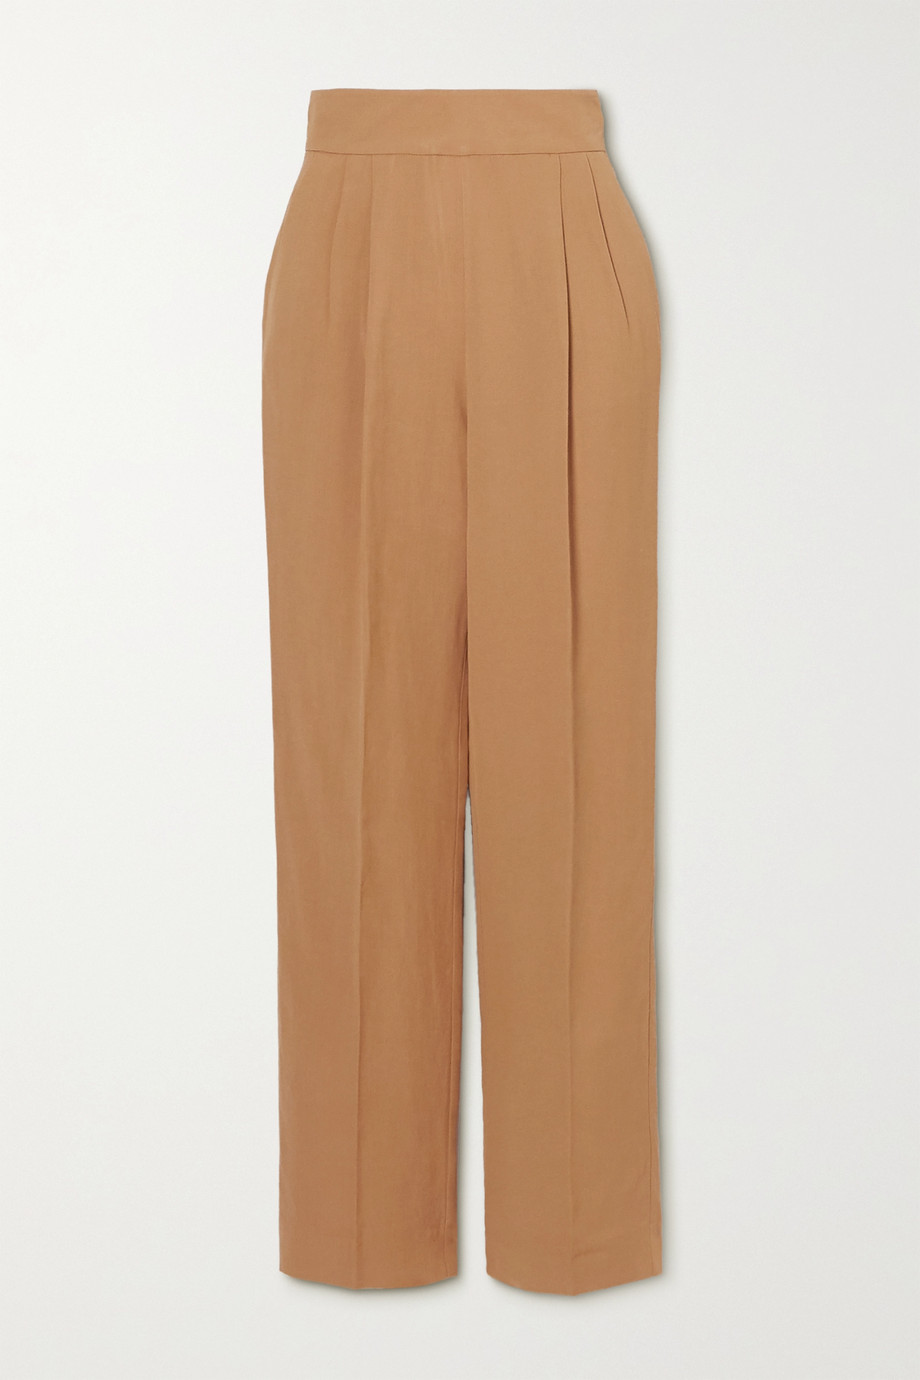 USISI SISTER Flora pleated woven straight-leg pants